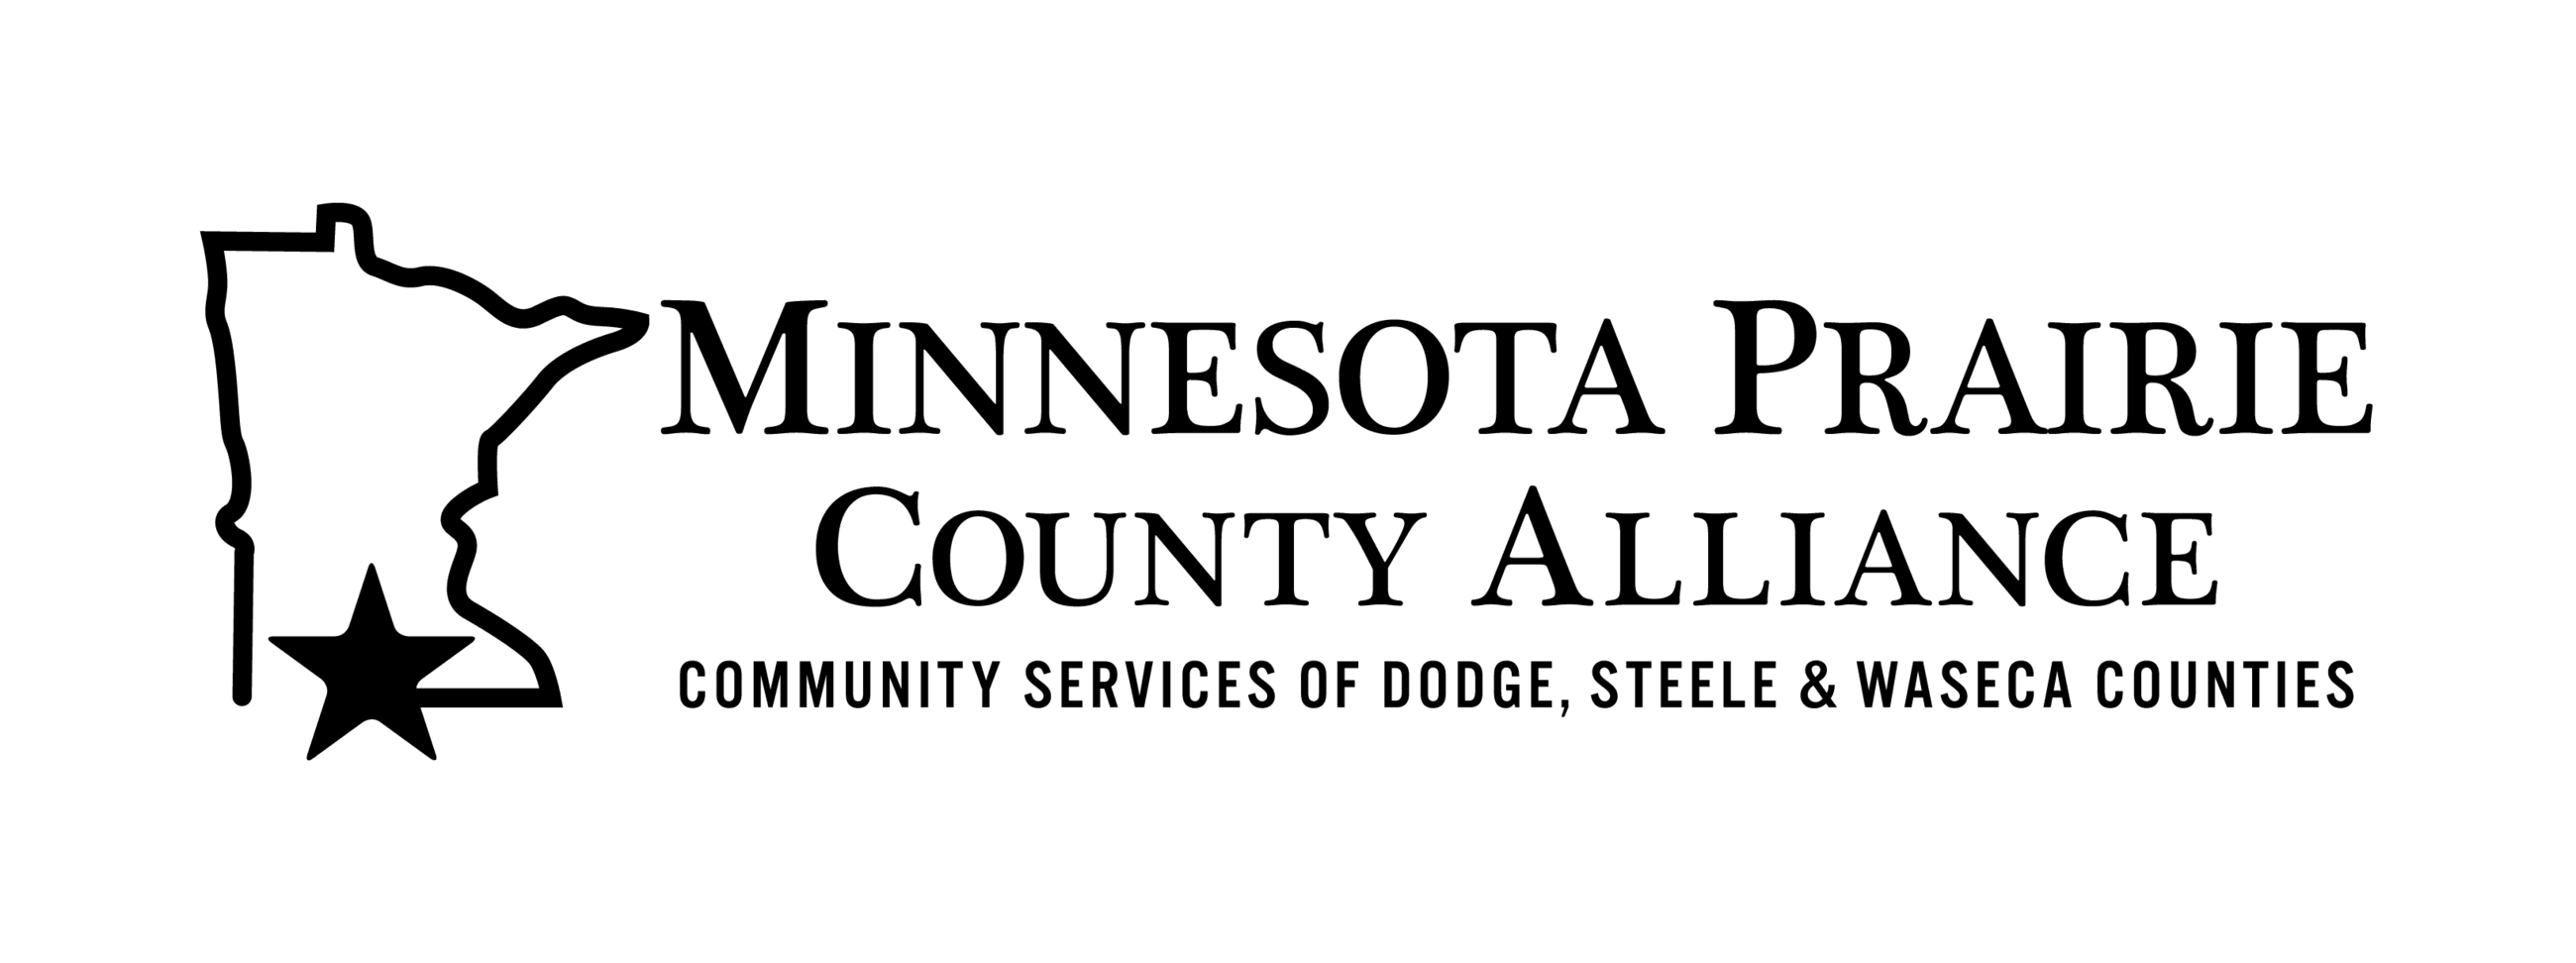 Minnesota Prairie County Alliance Community Services of Dodge, Steele and Waseca Counties